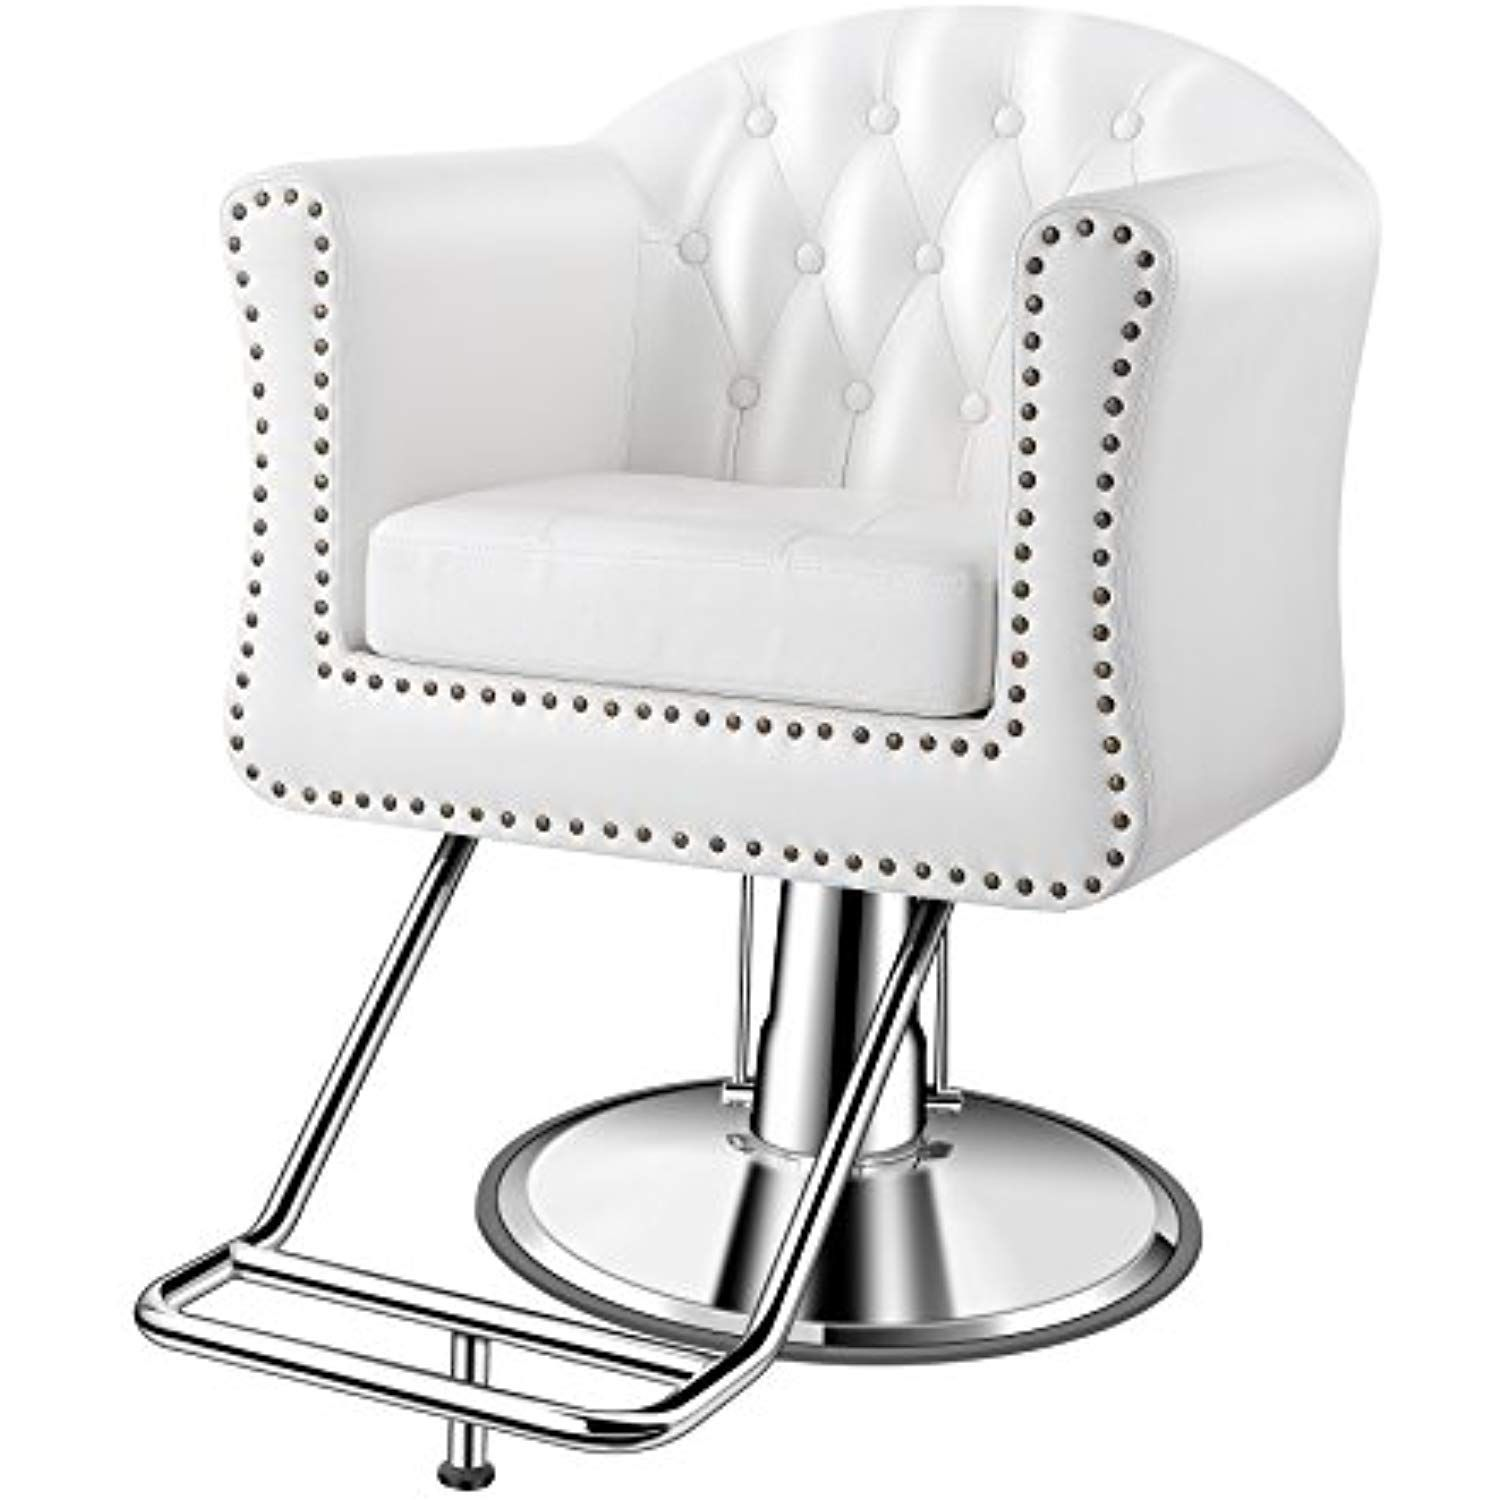 Baasha Luxury Classic White Styling Chair For Hair Salon All Purpose Square Salon Chair With Hydraulic Pum Salon Styling Chairs Hair Salon Chairs Salon Chairs